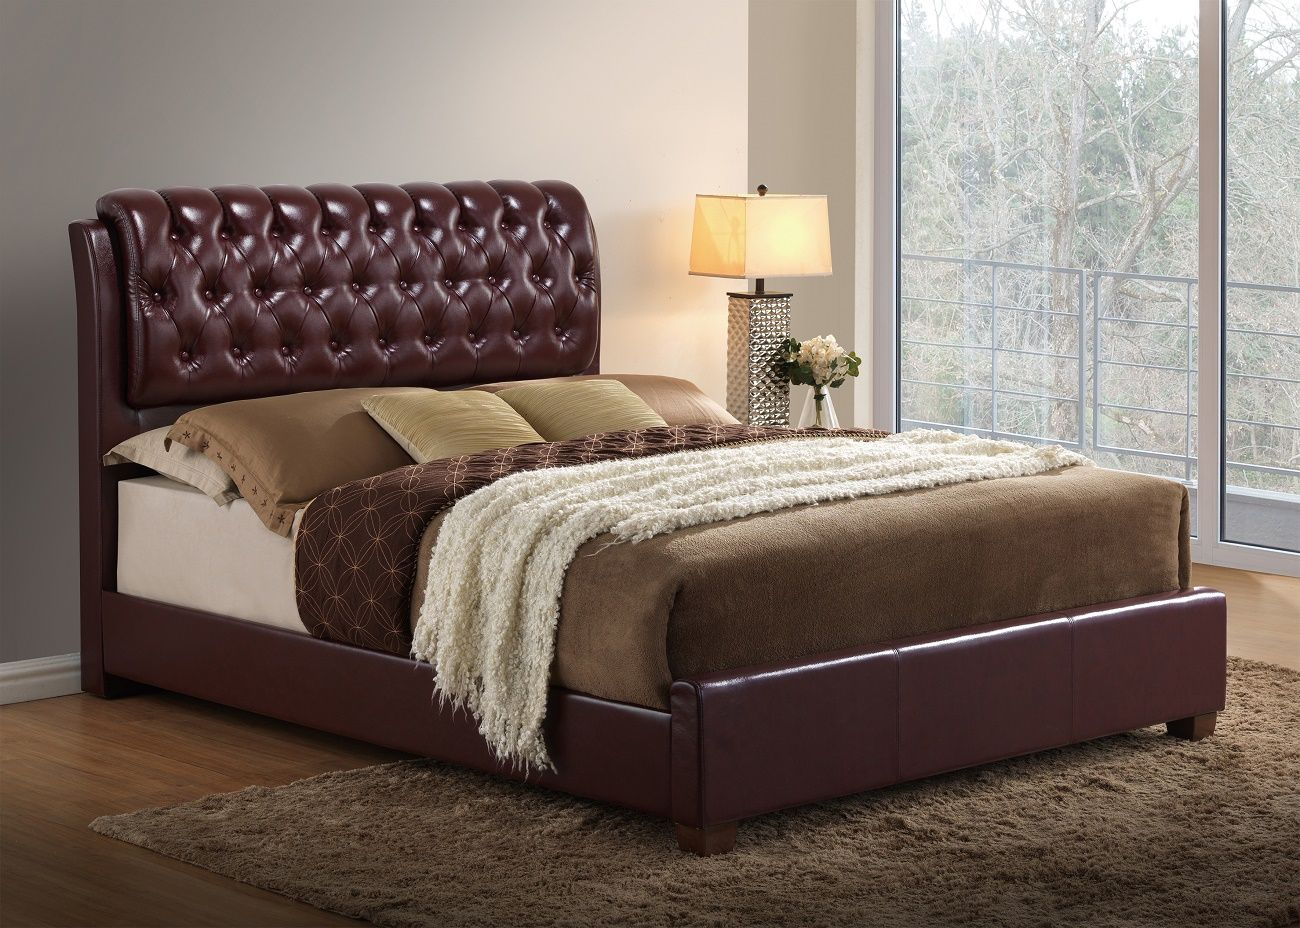 8119 BUR PU Bed By Global Furniture Great Furniture To Modernize Your Living  Space!